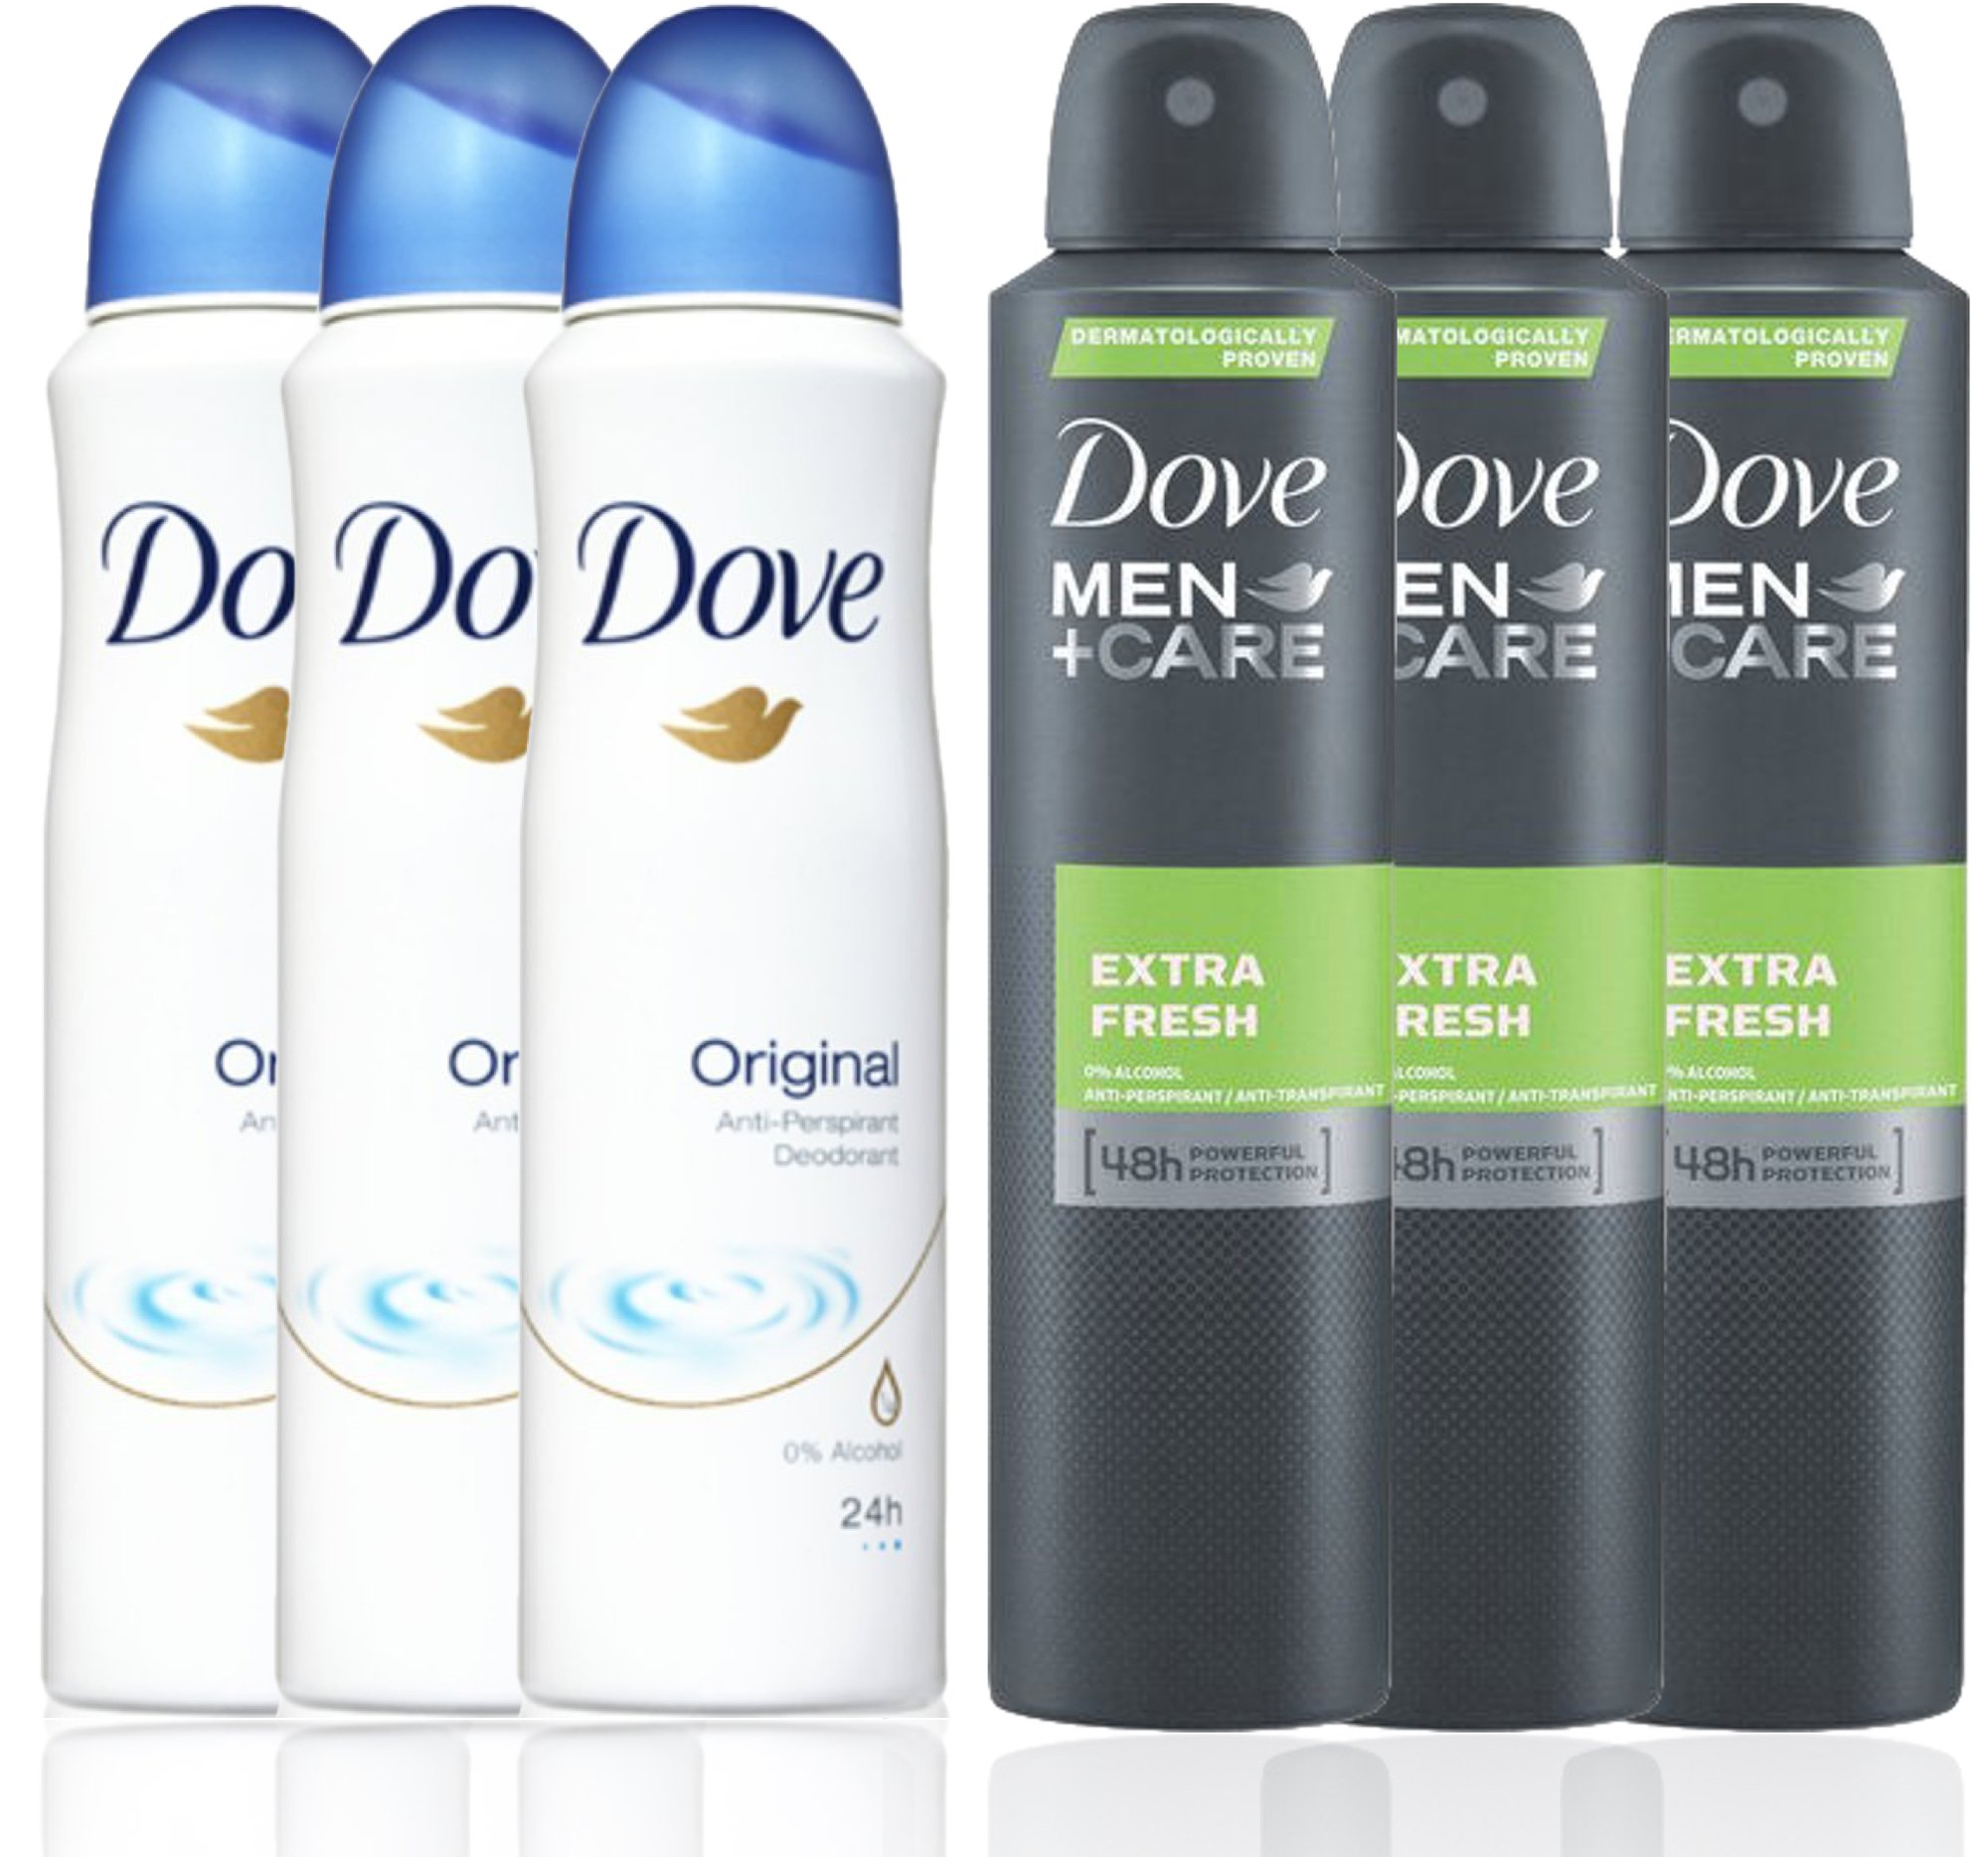 3 Bottles Dove Anti-Perspirant Deodorant Original & 3 Bottles Dove Men + Care Extra Fresh Spray Deodorant 48hr 150ML / 5.07 Oz - (Total 6 Bottle Pack)